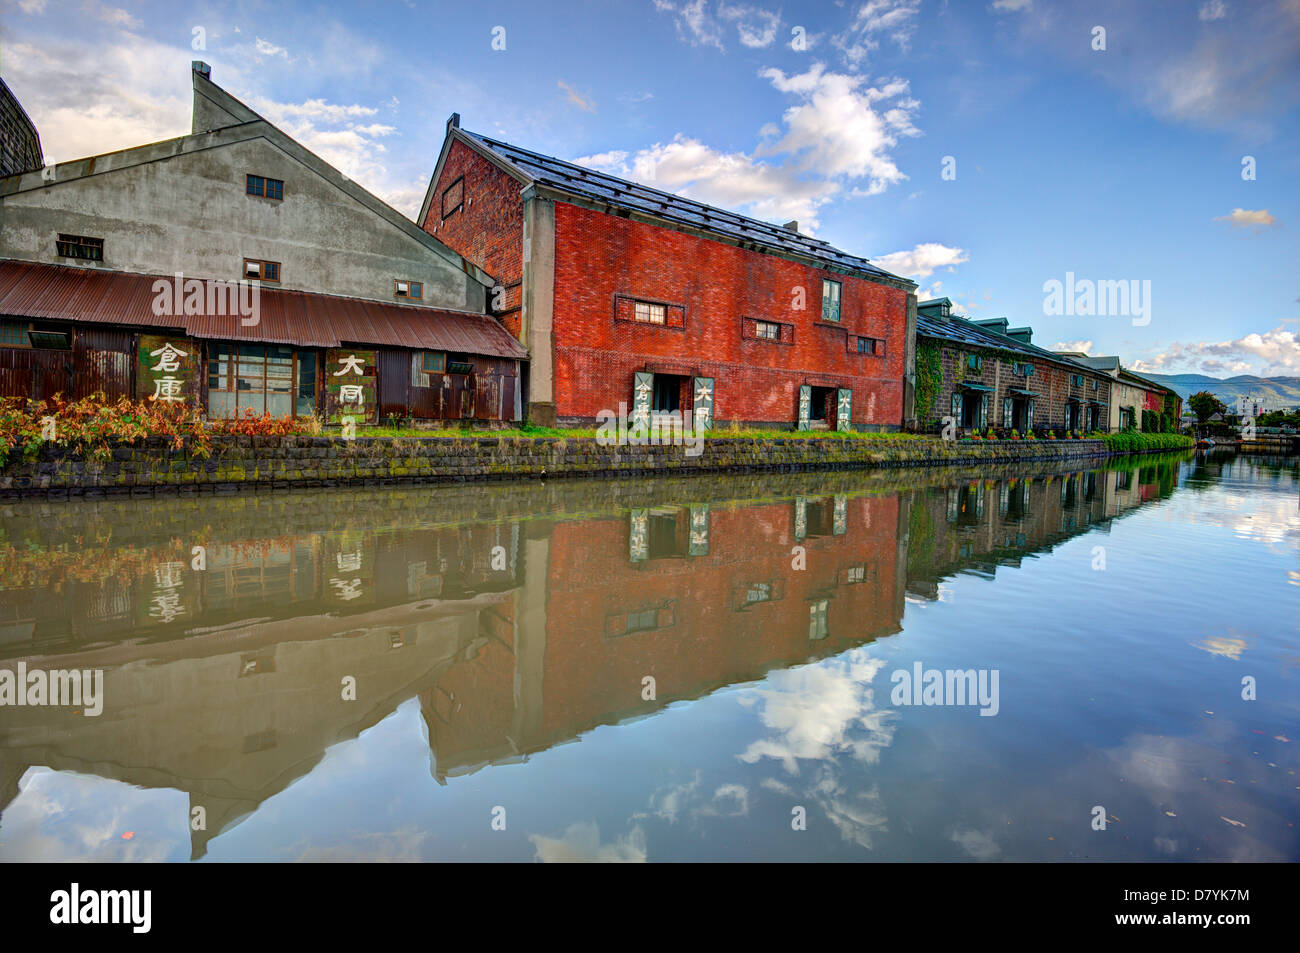 Entrepôts d'Otaru, au Japon. Photo Stock